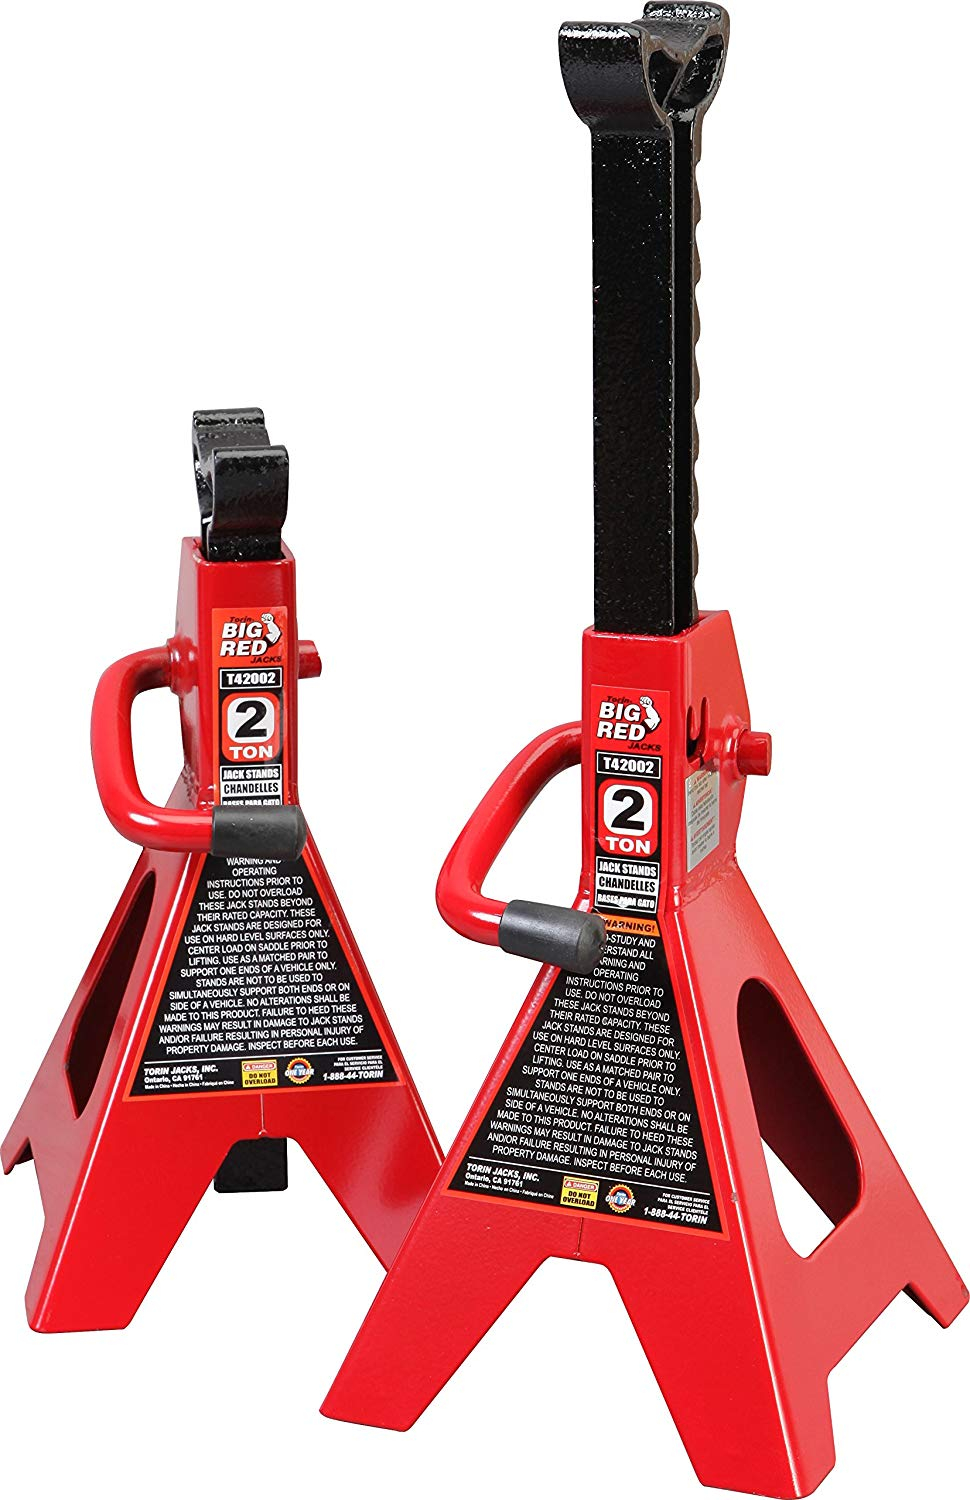 Details about CAR JACK STANDS 2 Ton Vehicle Support 17 High Lift Garage  Auto Tool Set 2 Pack